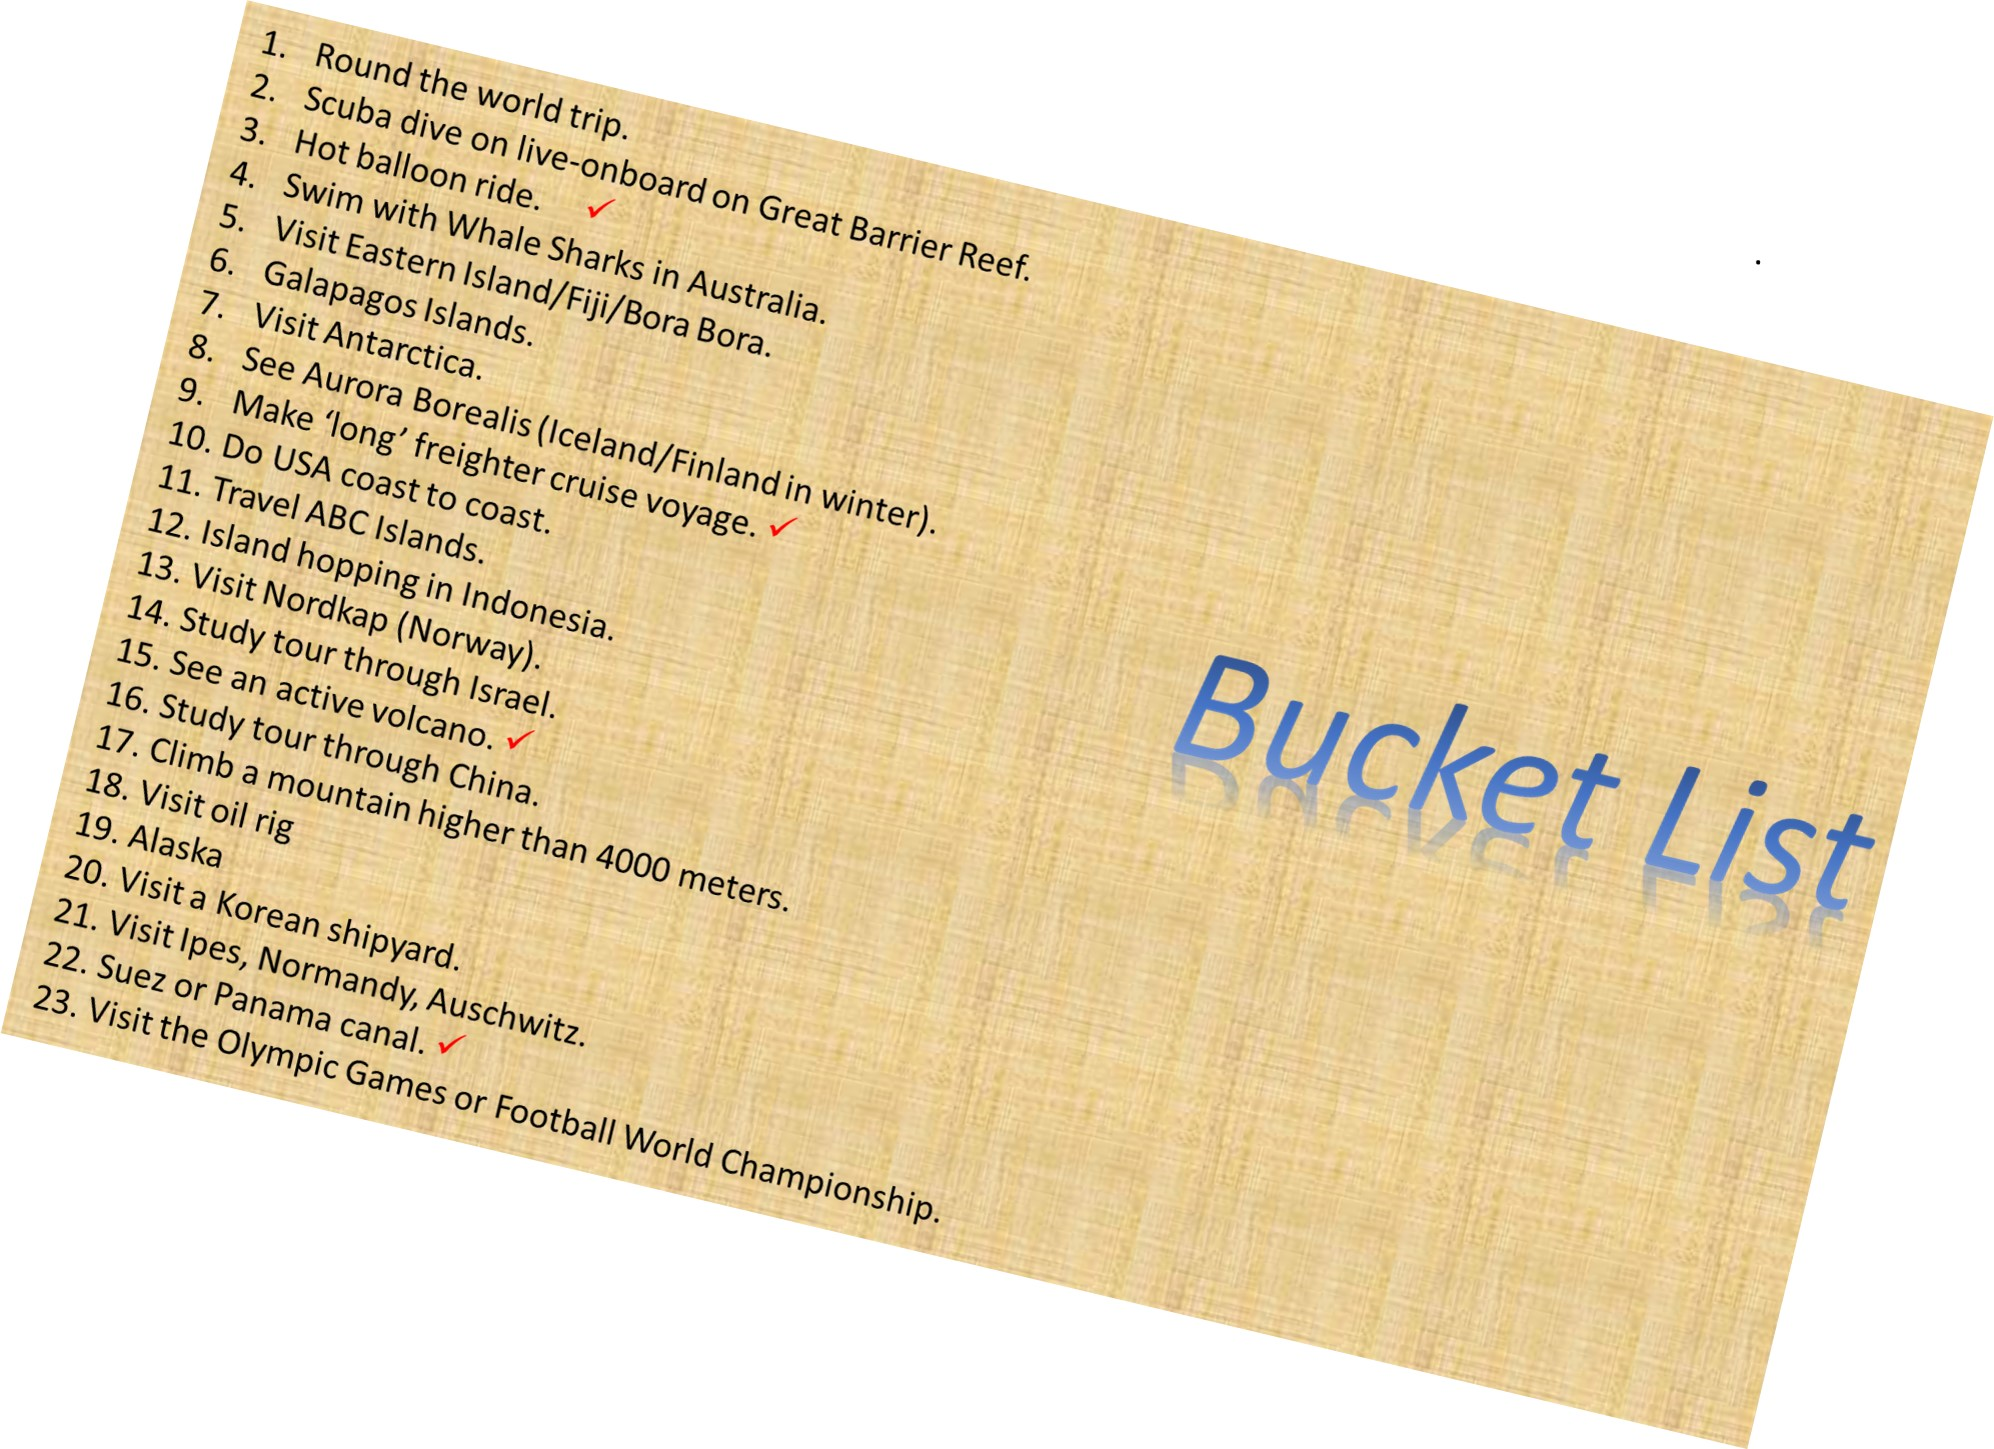 The bucket list: - Our wish list of things we still want to do.